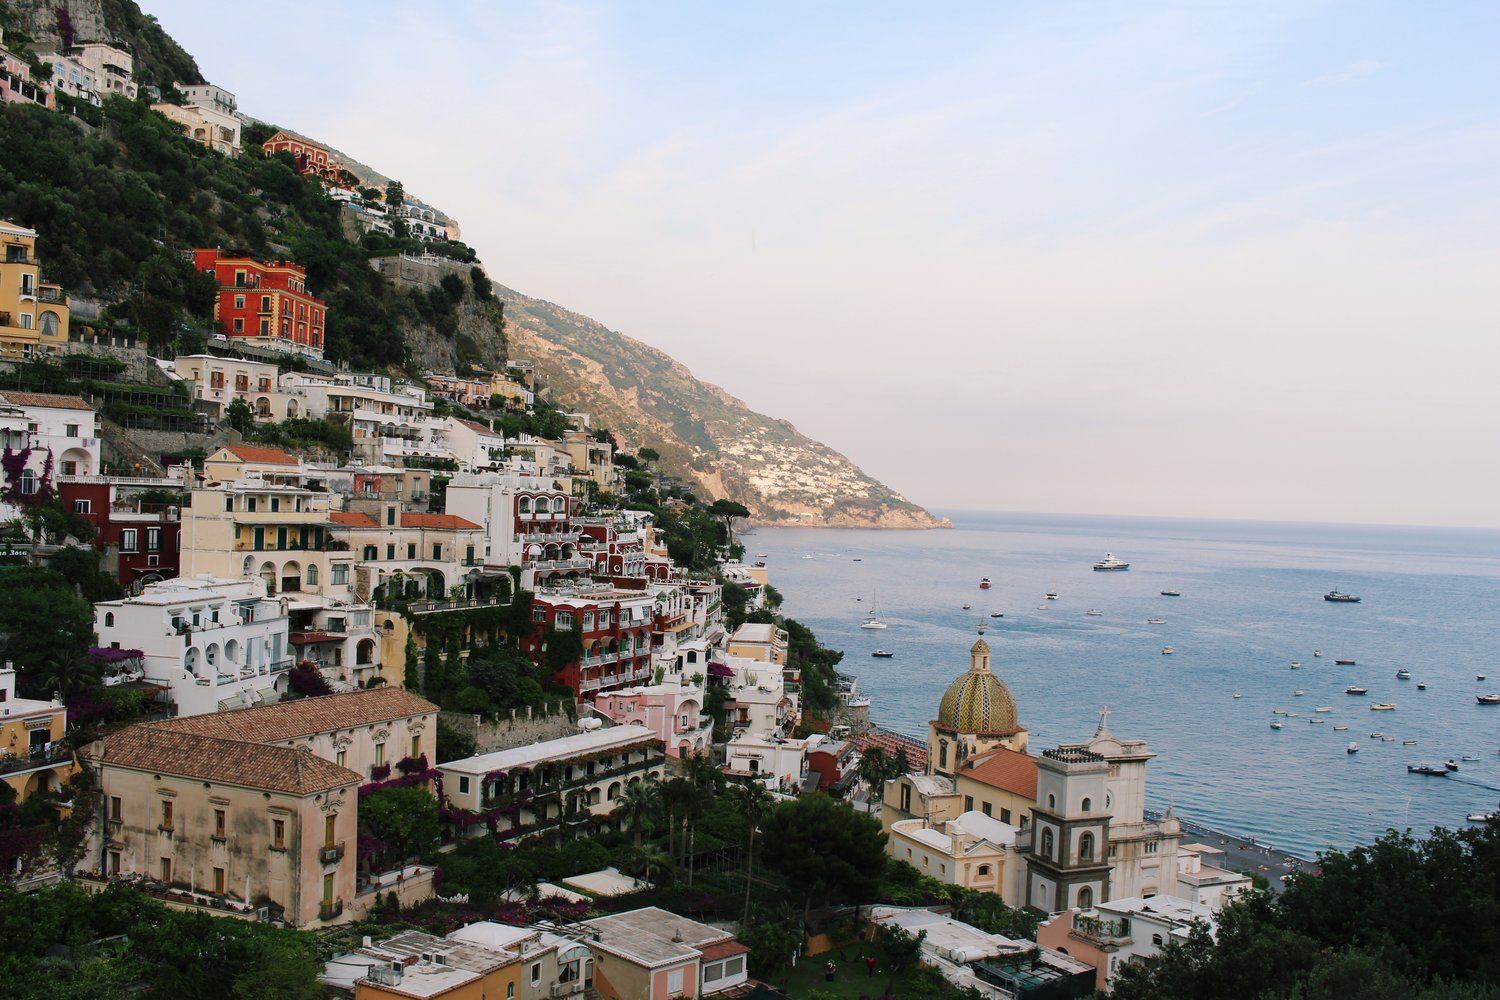 travel Amalfi coast Italy Positano vacation blog blogger fashion style food outfit ootd Nikki acuna